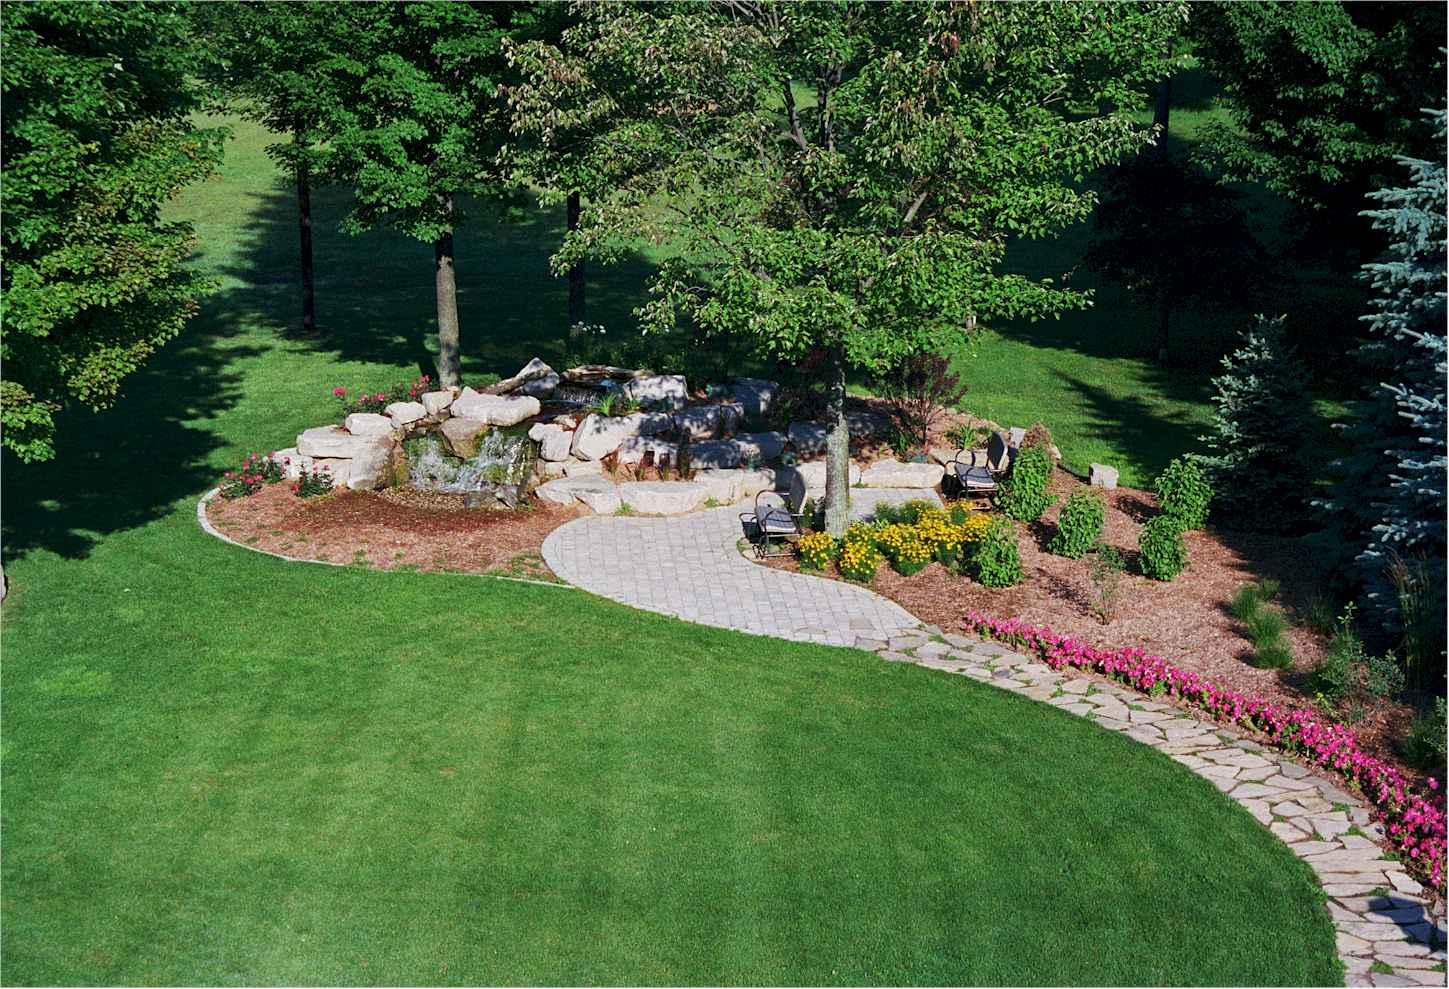 Ideas For Inspiring Landscape Designs For Your Home!